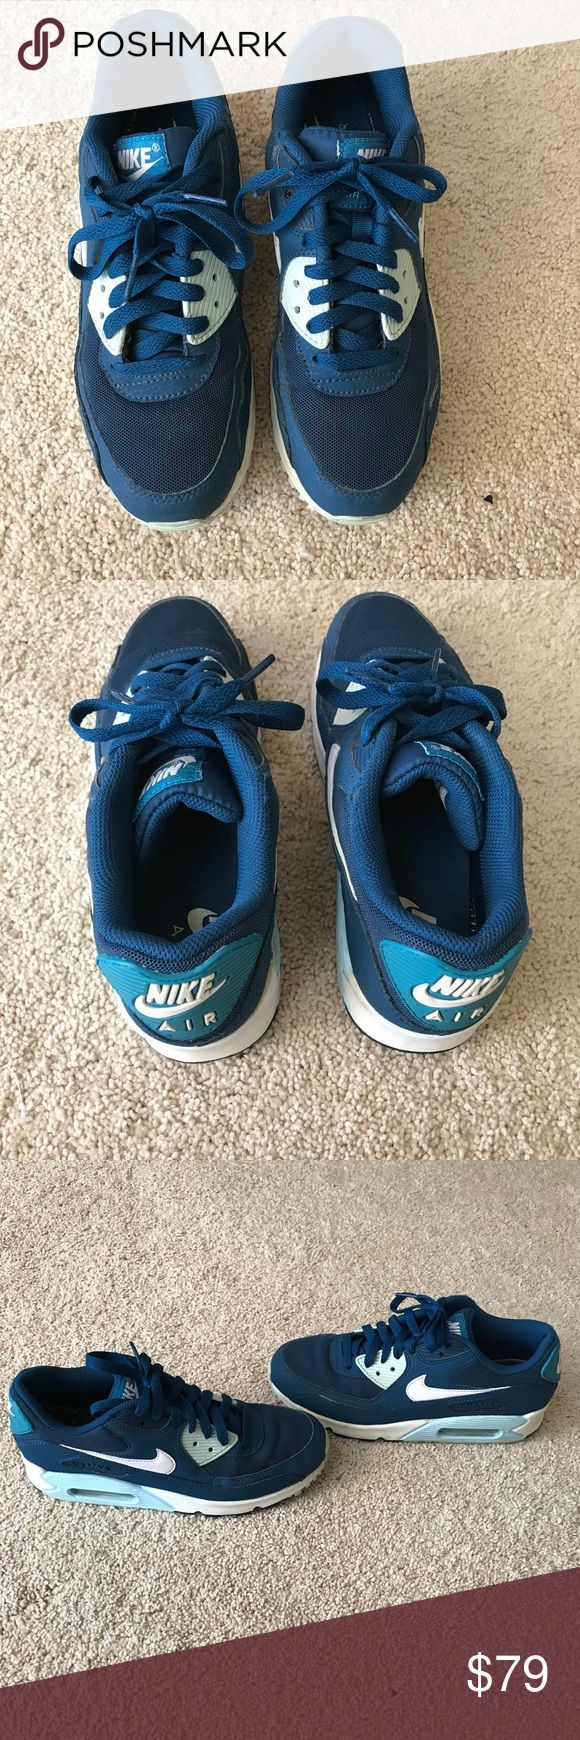 Women's Nike Air Mac 90 Nike Women's Air Max 90 Like new, worn couple of times, no box, no signs of wear, size 7.5 Retail Price $120 +tax, purchased @ Six 02 store Price is firm Nike Shoes Athletic Shoes